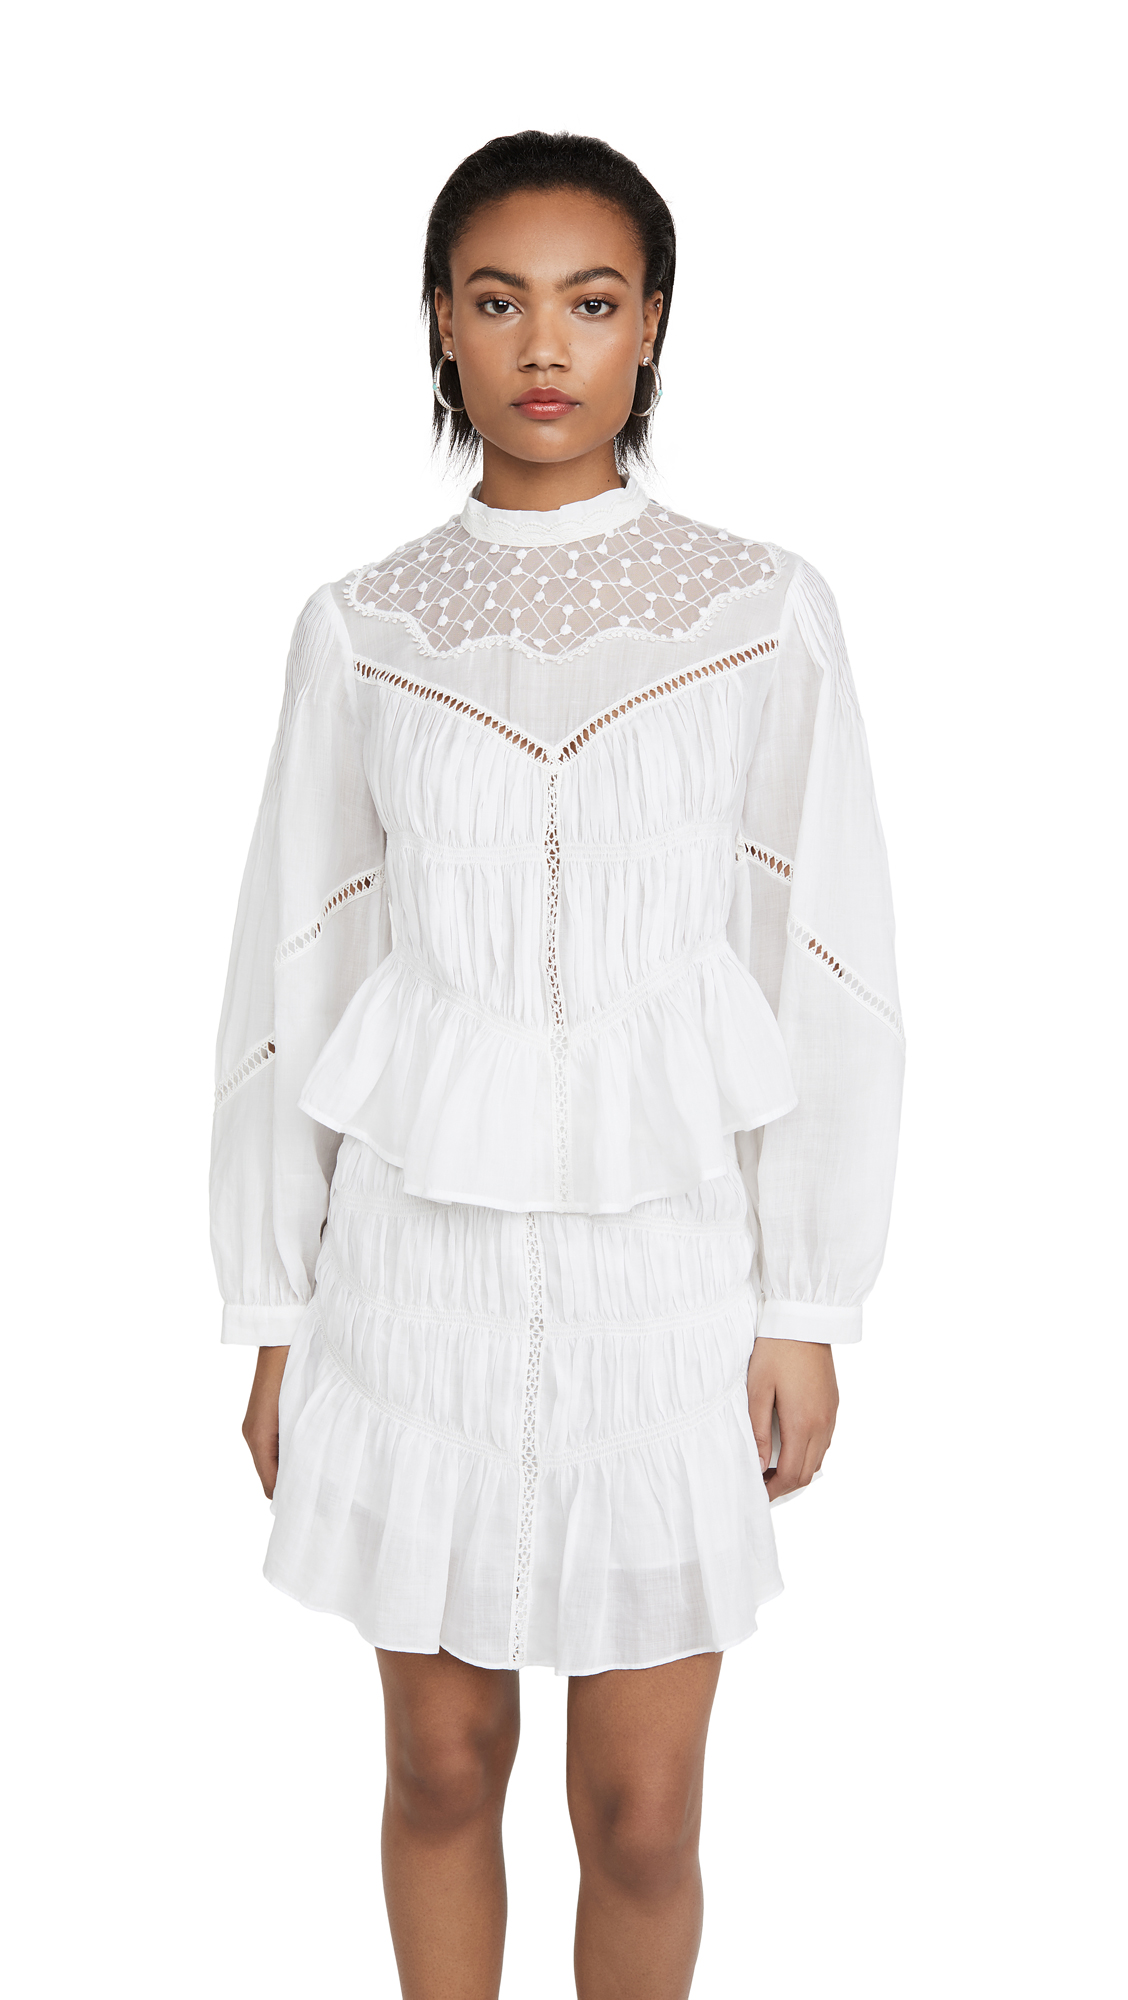 Isabel Marant Samantha Blouse – 50% Off Sale